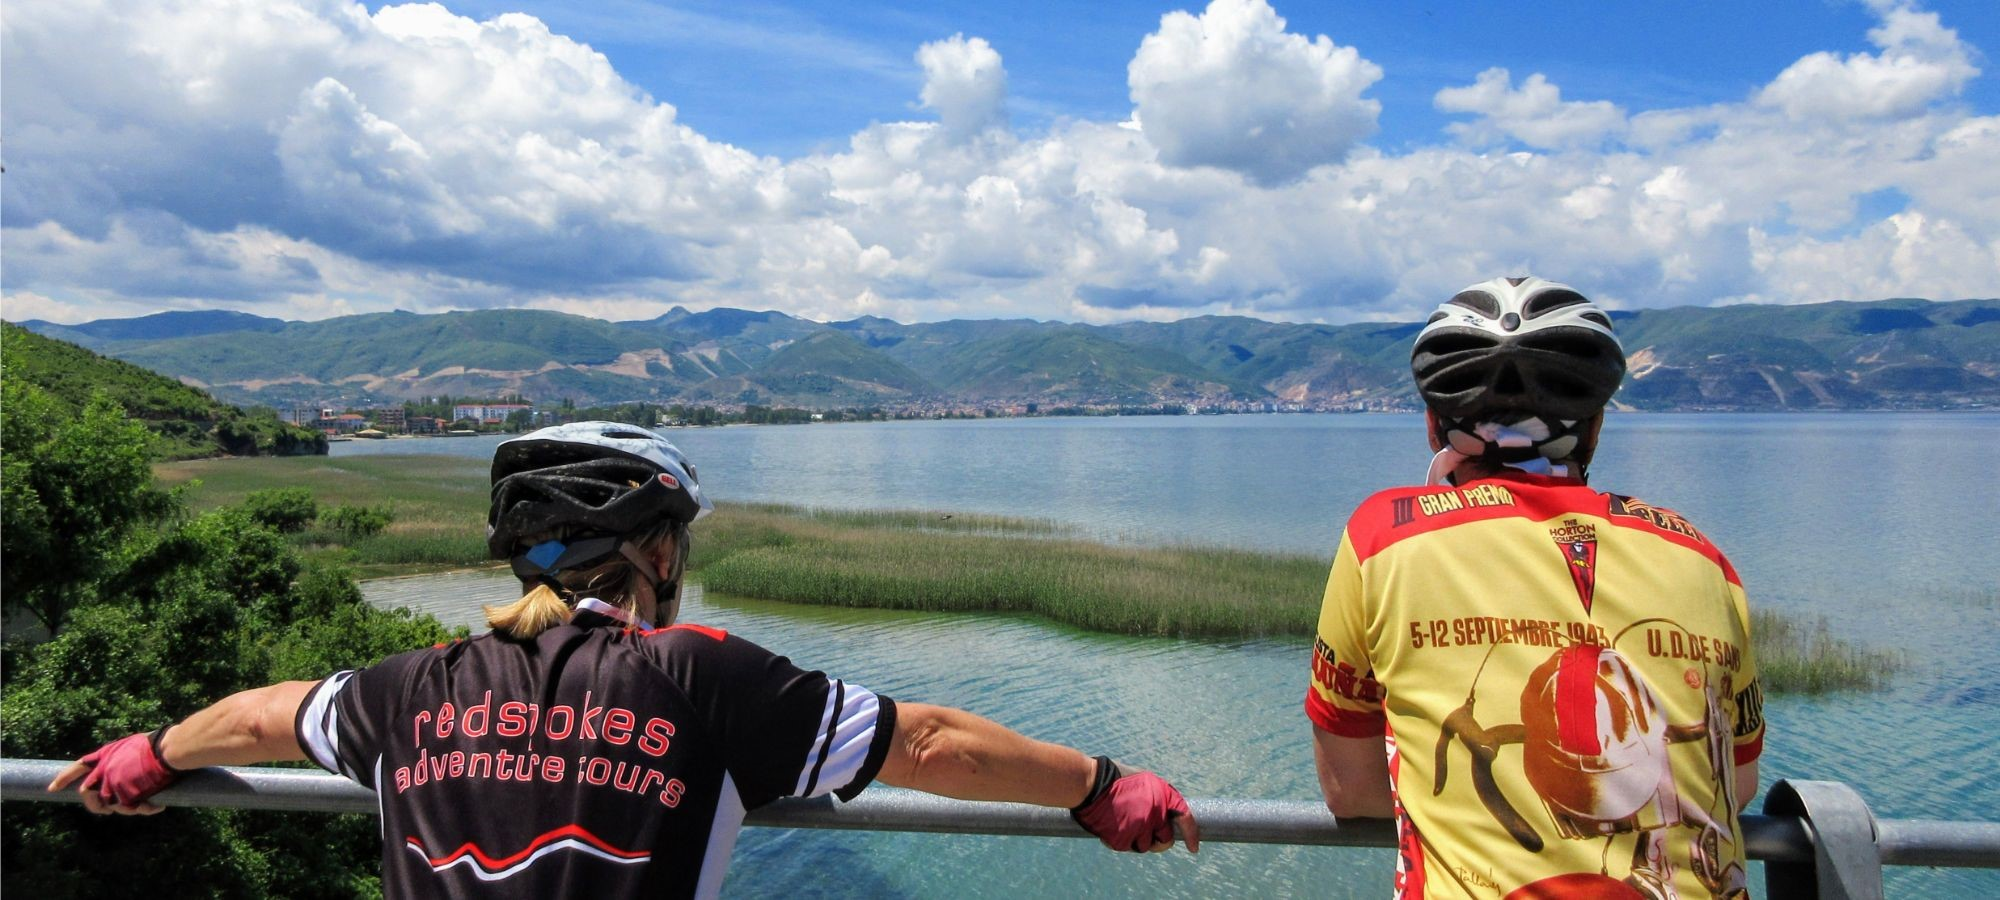 cycling holidays Albania